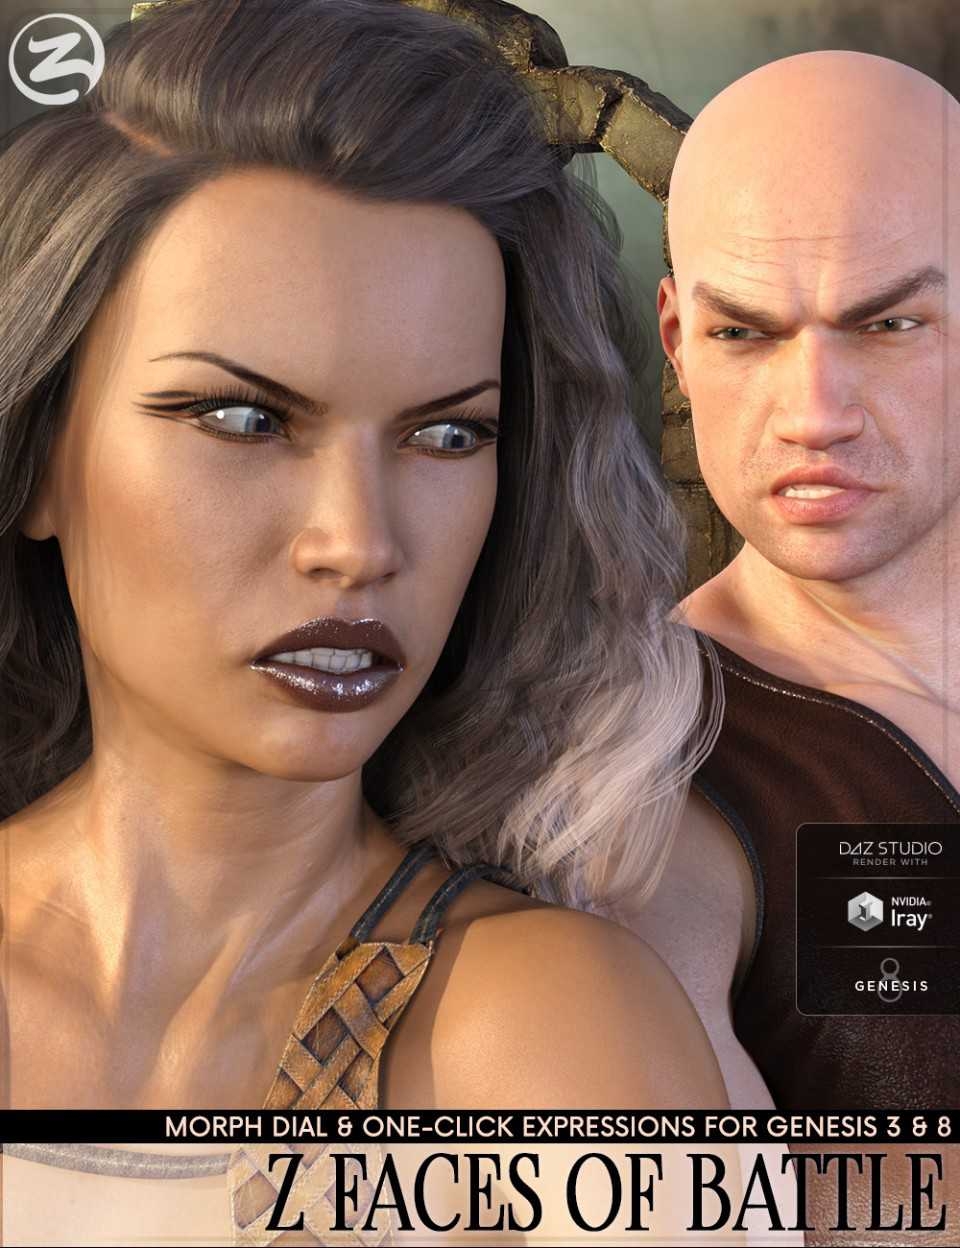 Z Faces Of Battle – Dialable and One-Click Expressions for Genesis 3 and 8